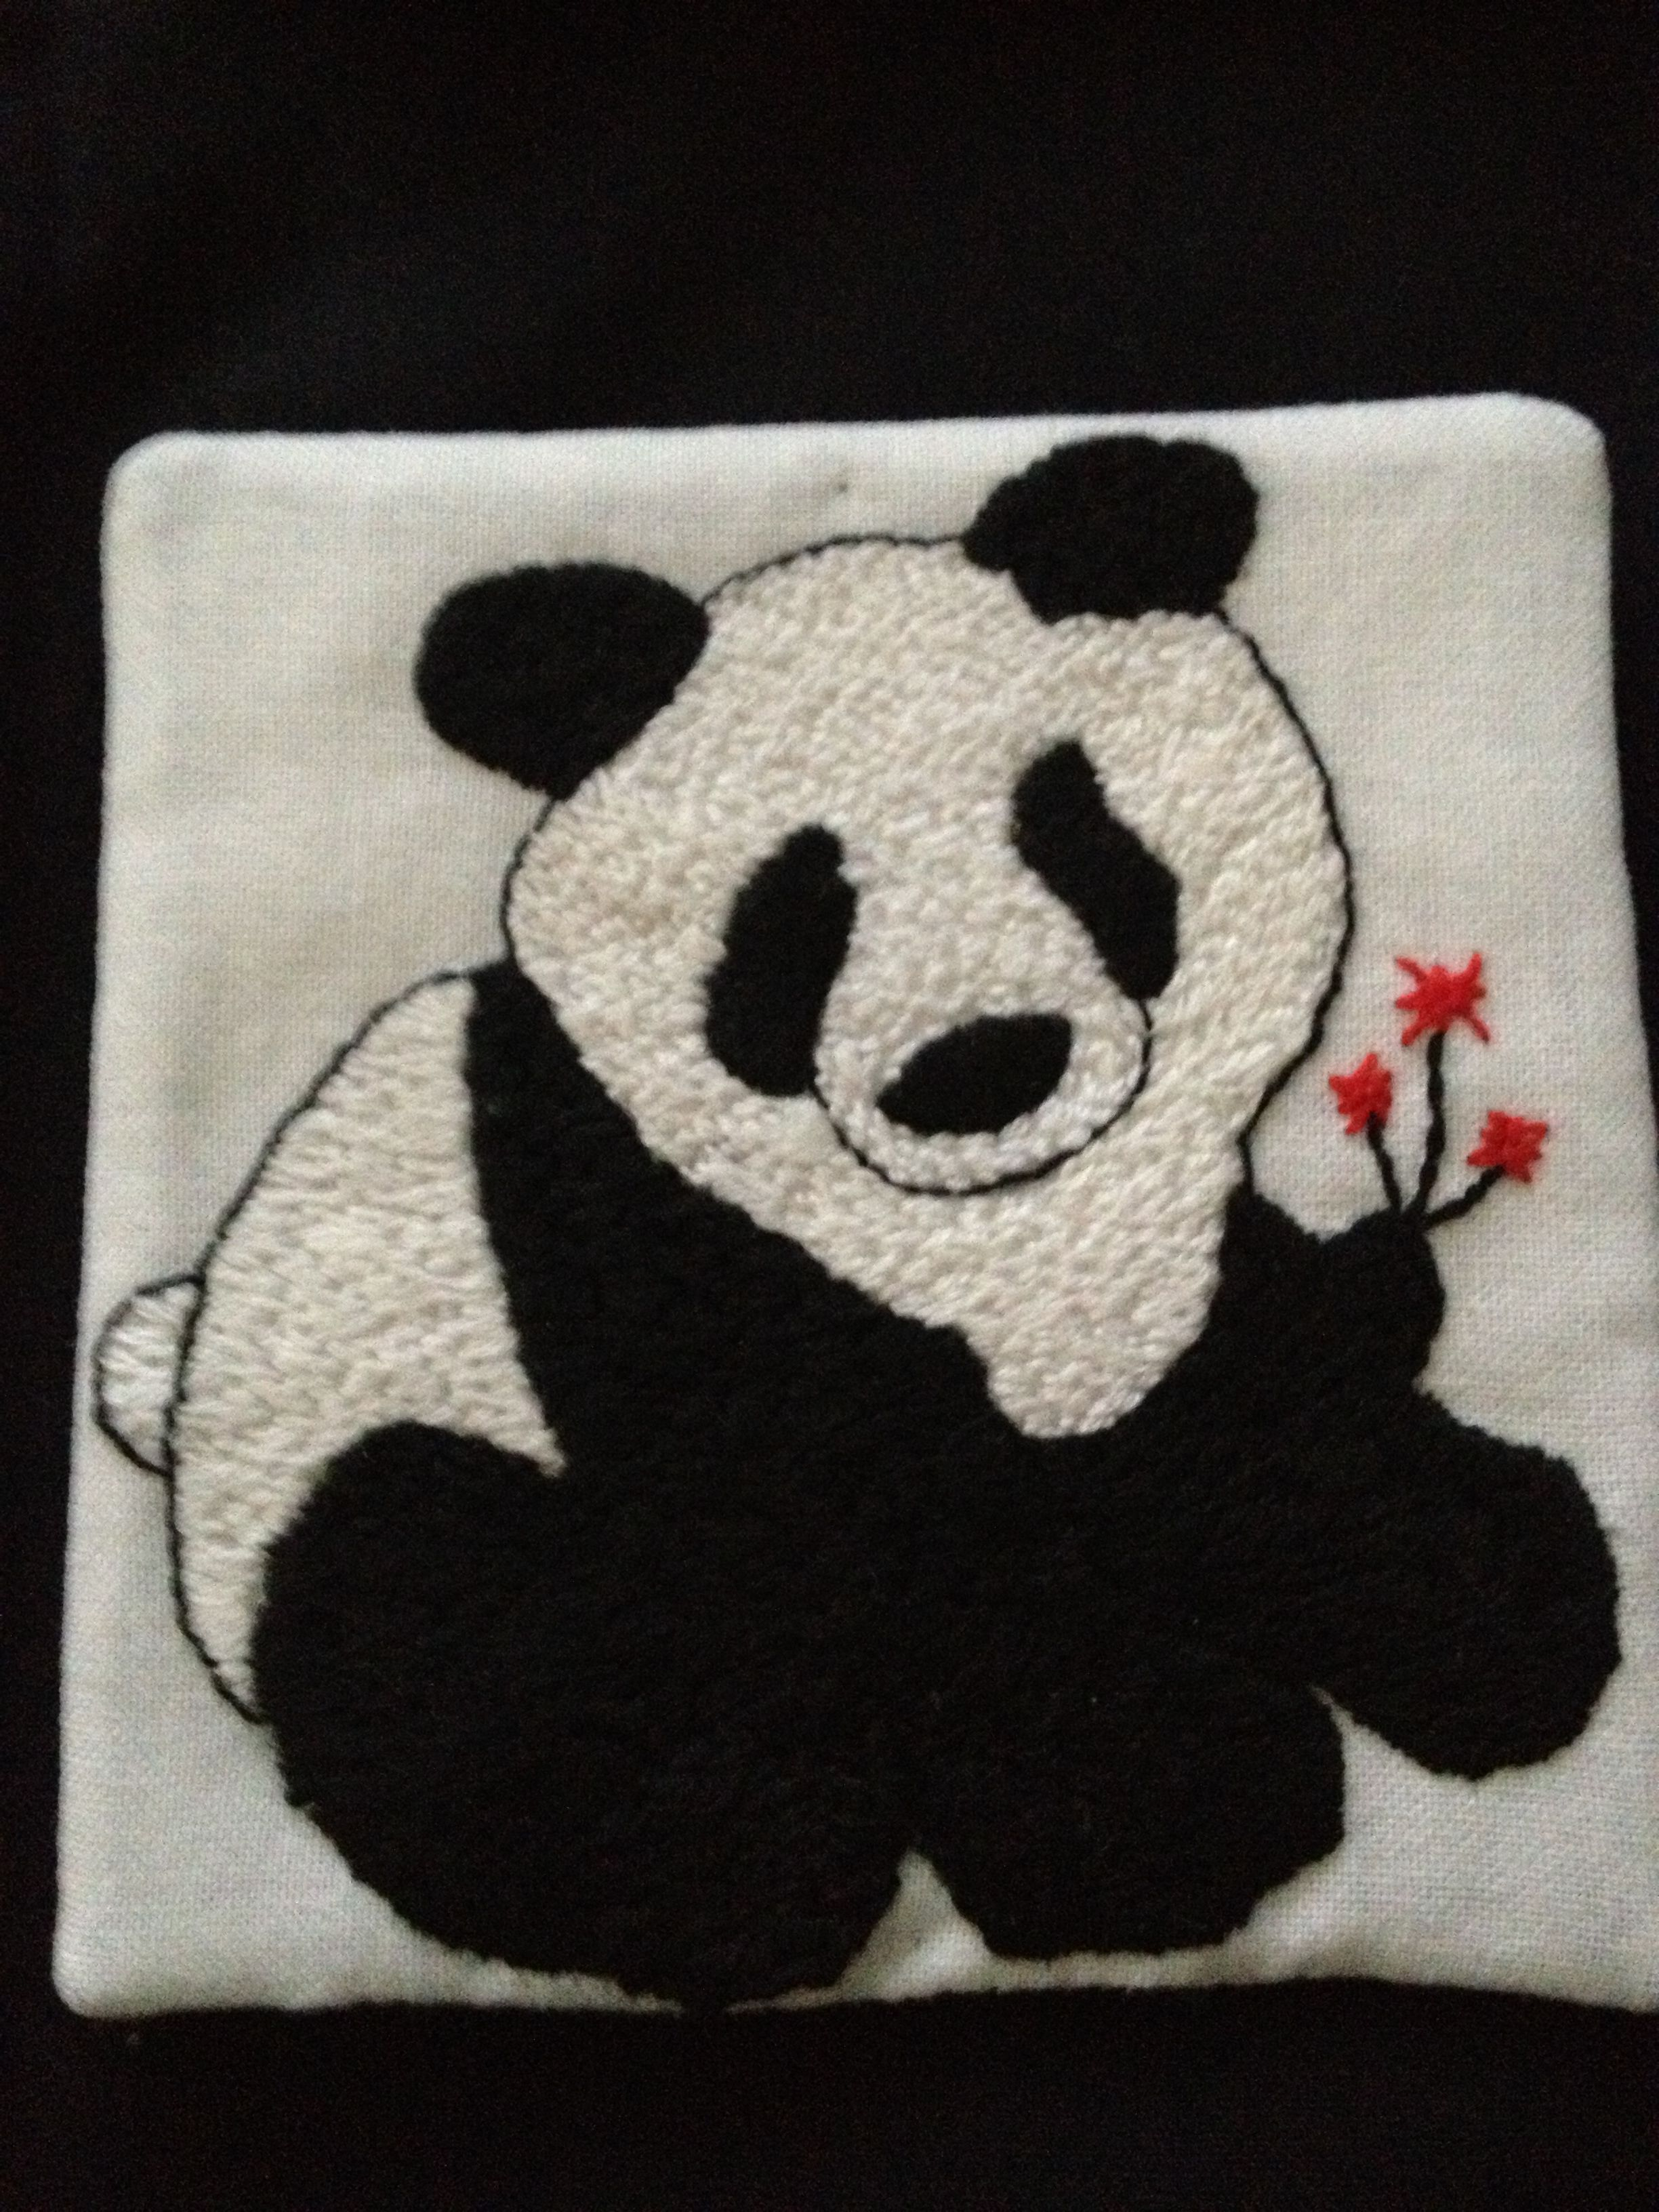 Lovely little panda worked in embroidery stitches